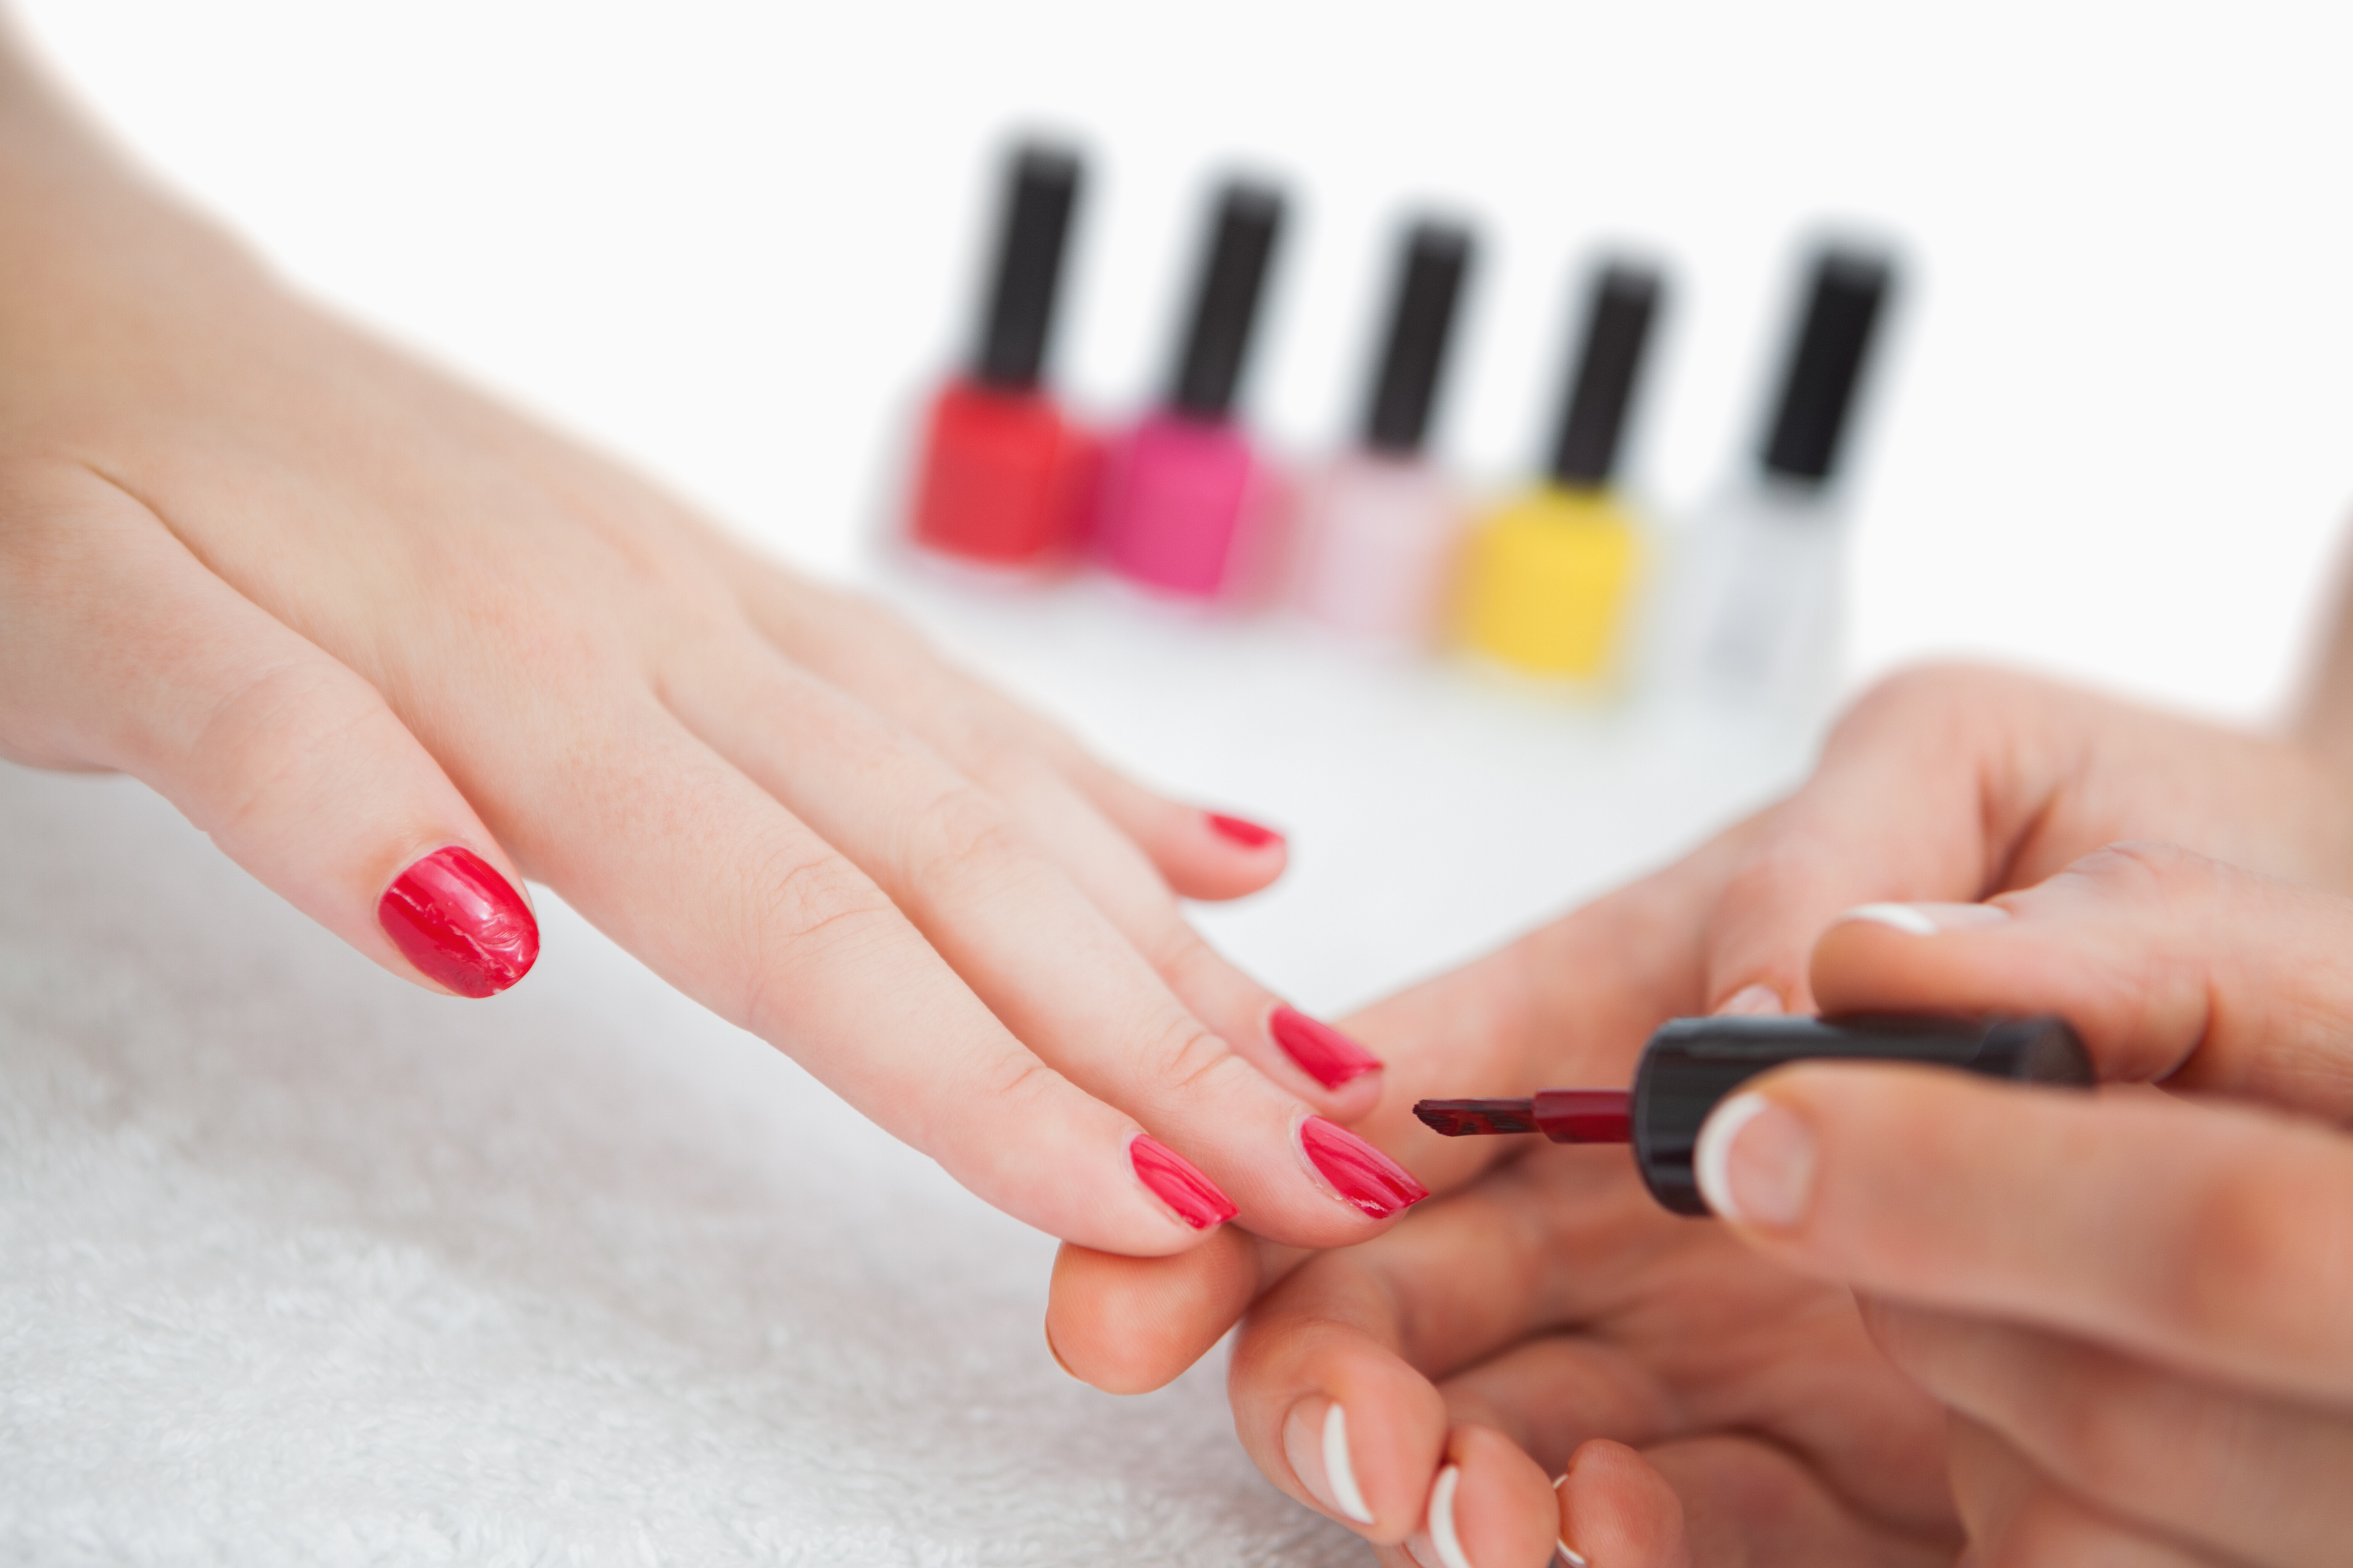 What You Don't Know About Getting Your Nails Done